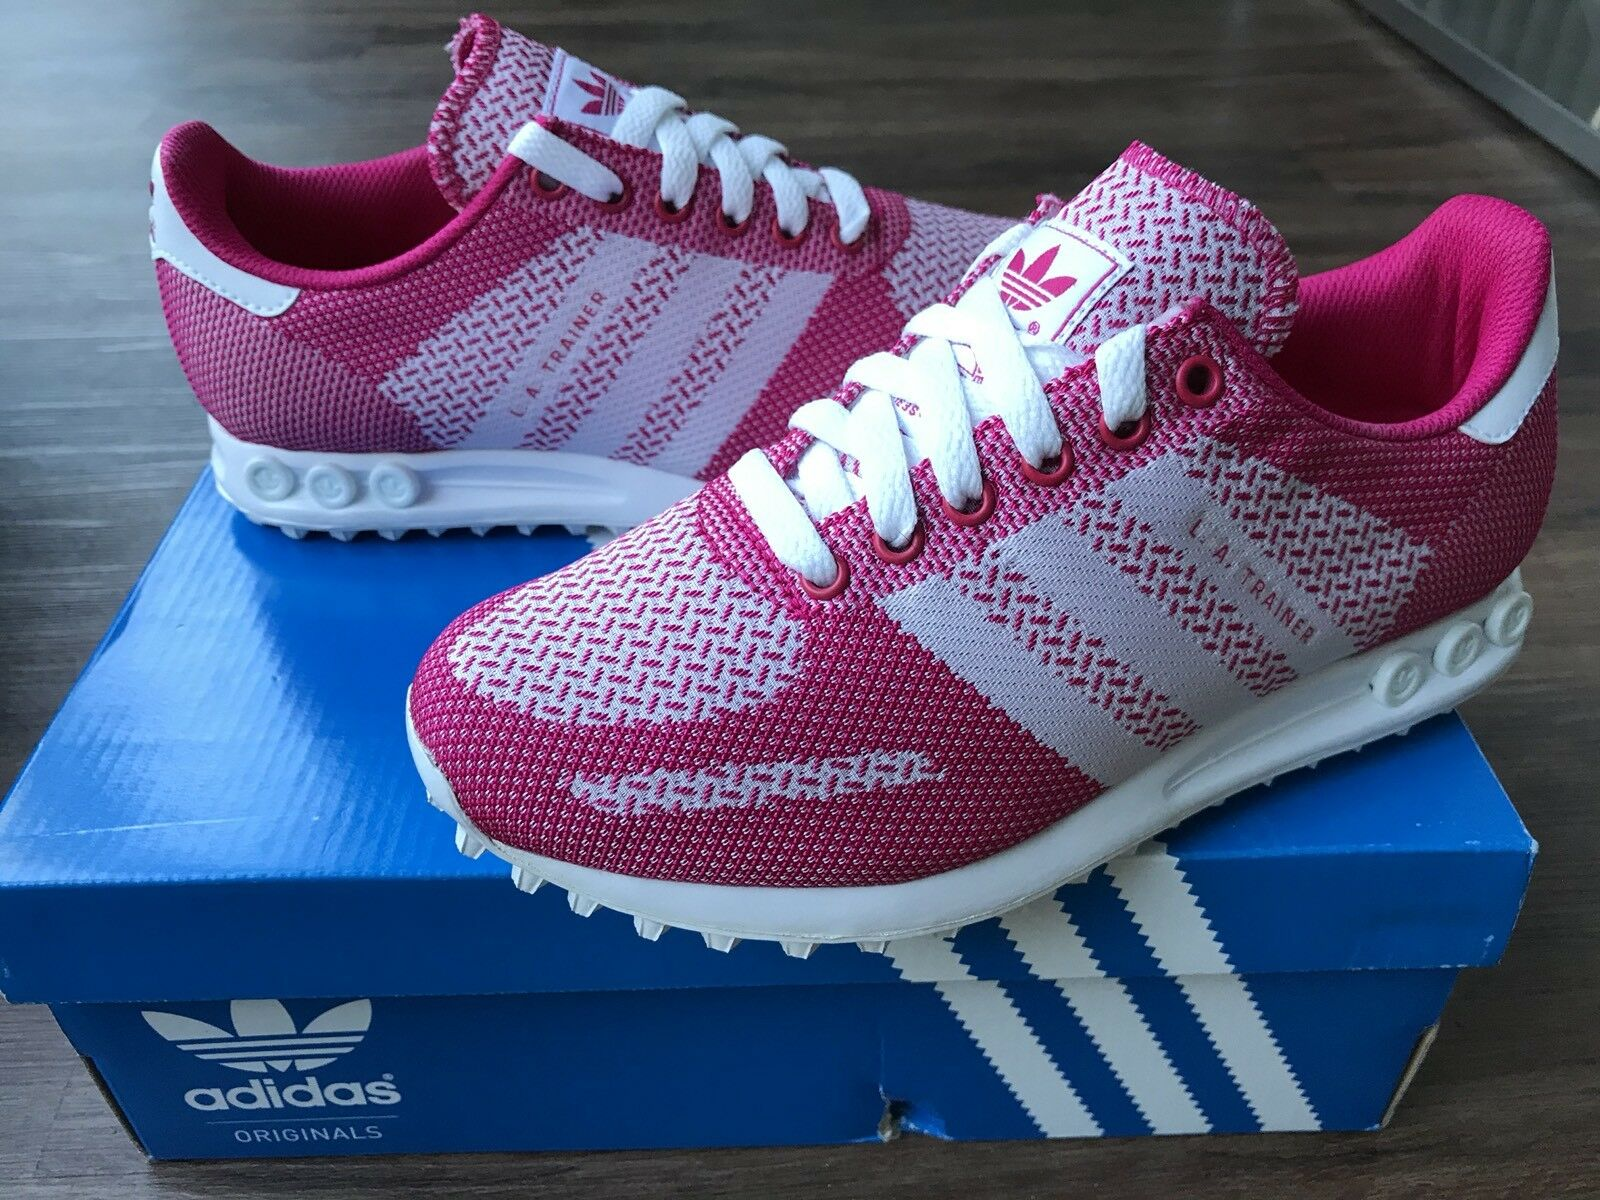 ADIDAS LA Weave Women's Trainers, Pink - Size 4.5